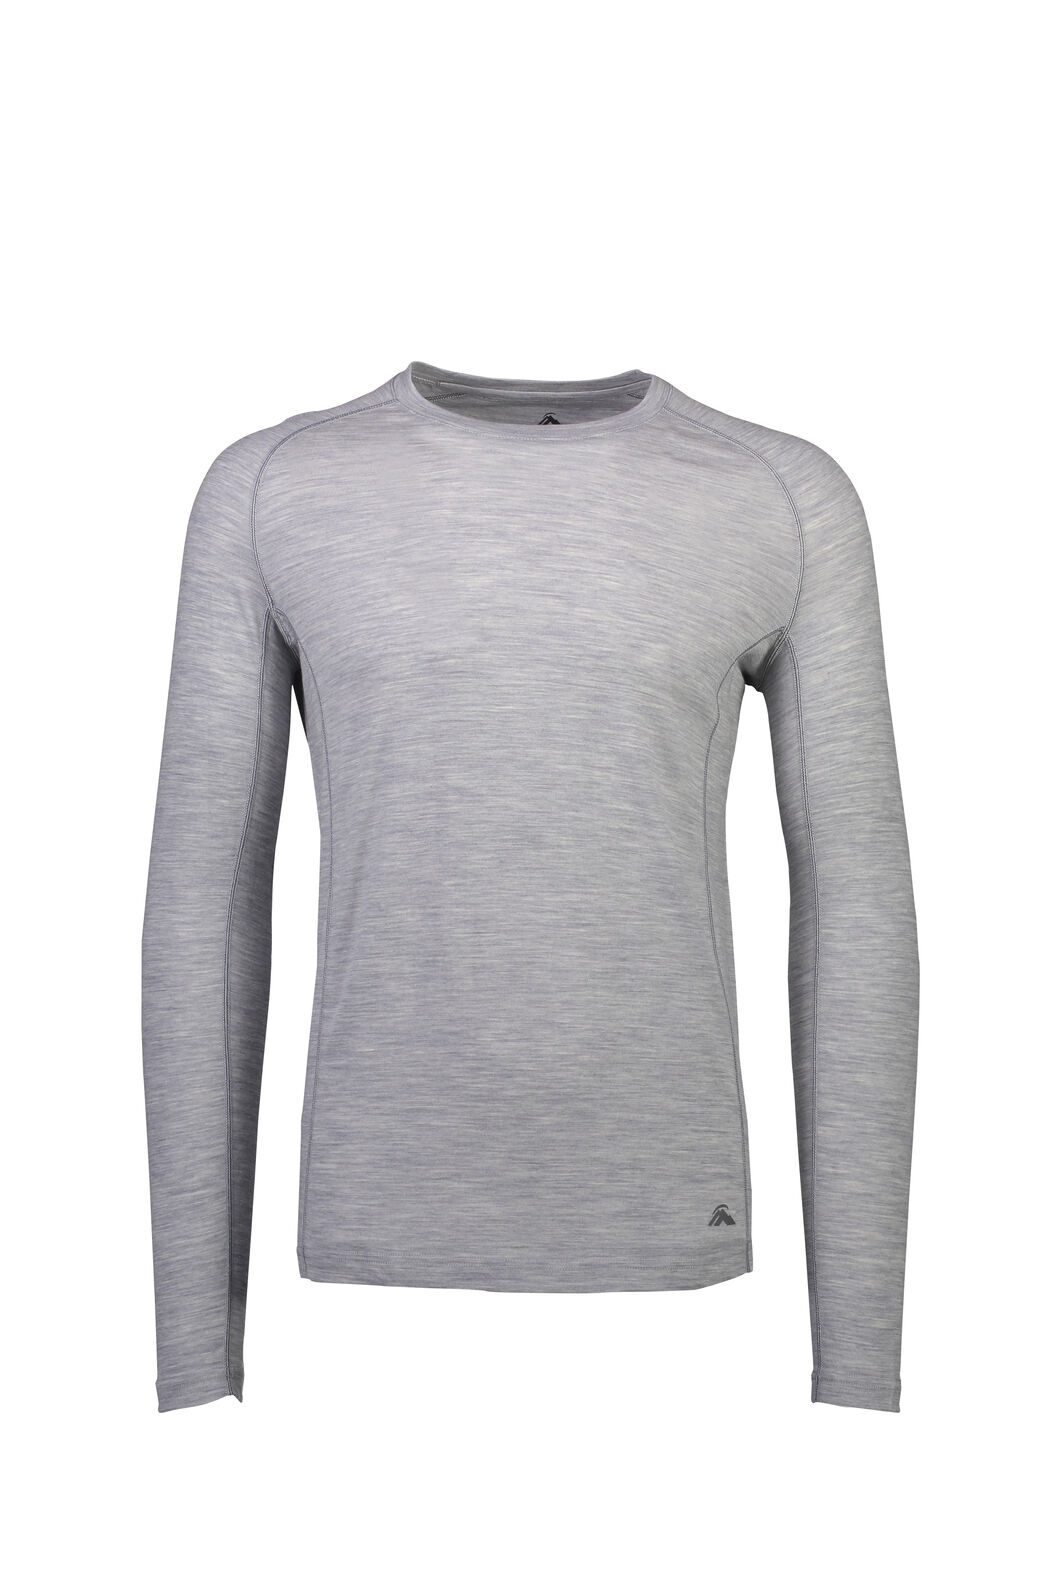 Macpac 150 Merino Long Sleeve Top - Men's, Light Grey Marle, hi-res